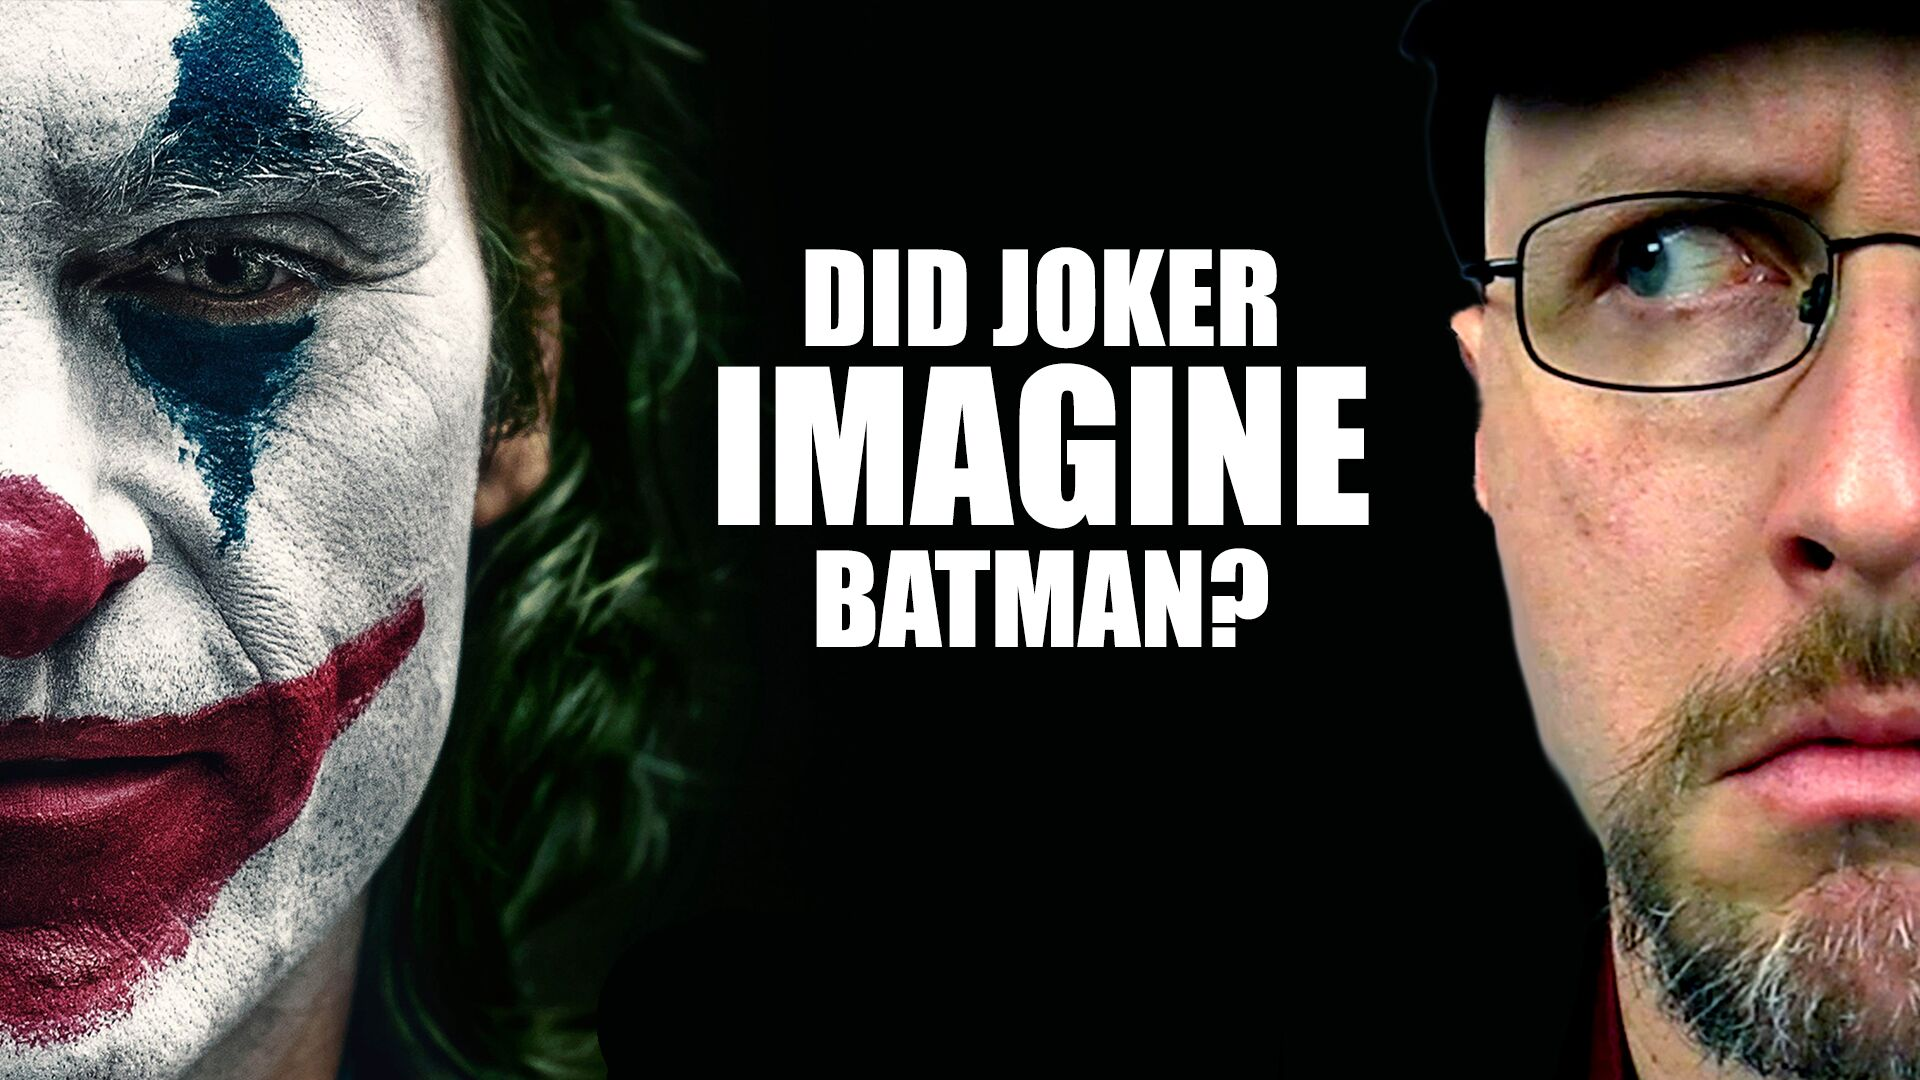 Did Joker Imagine Batman?